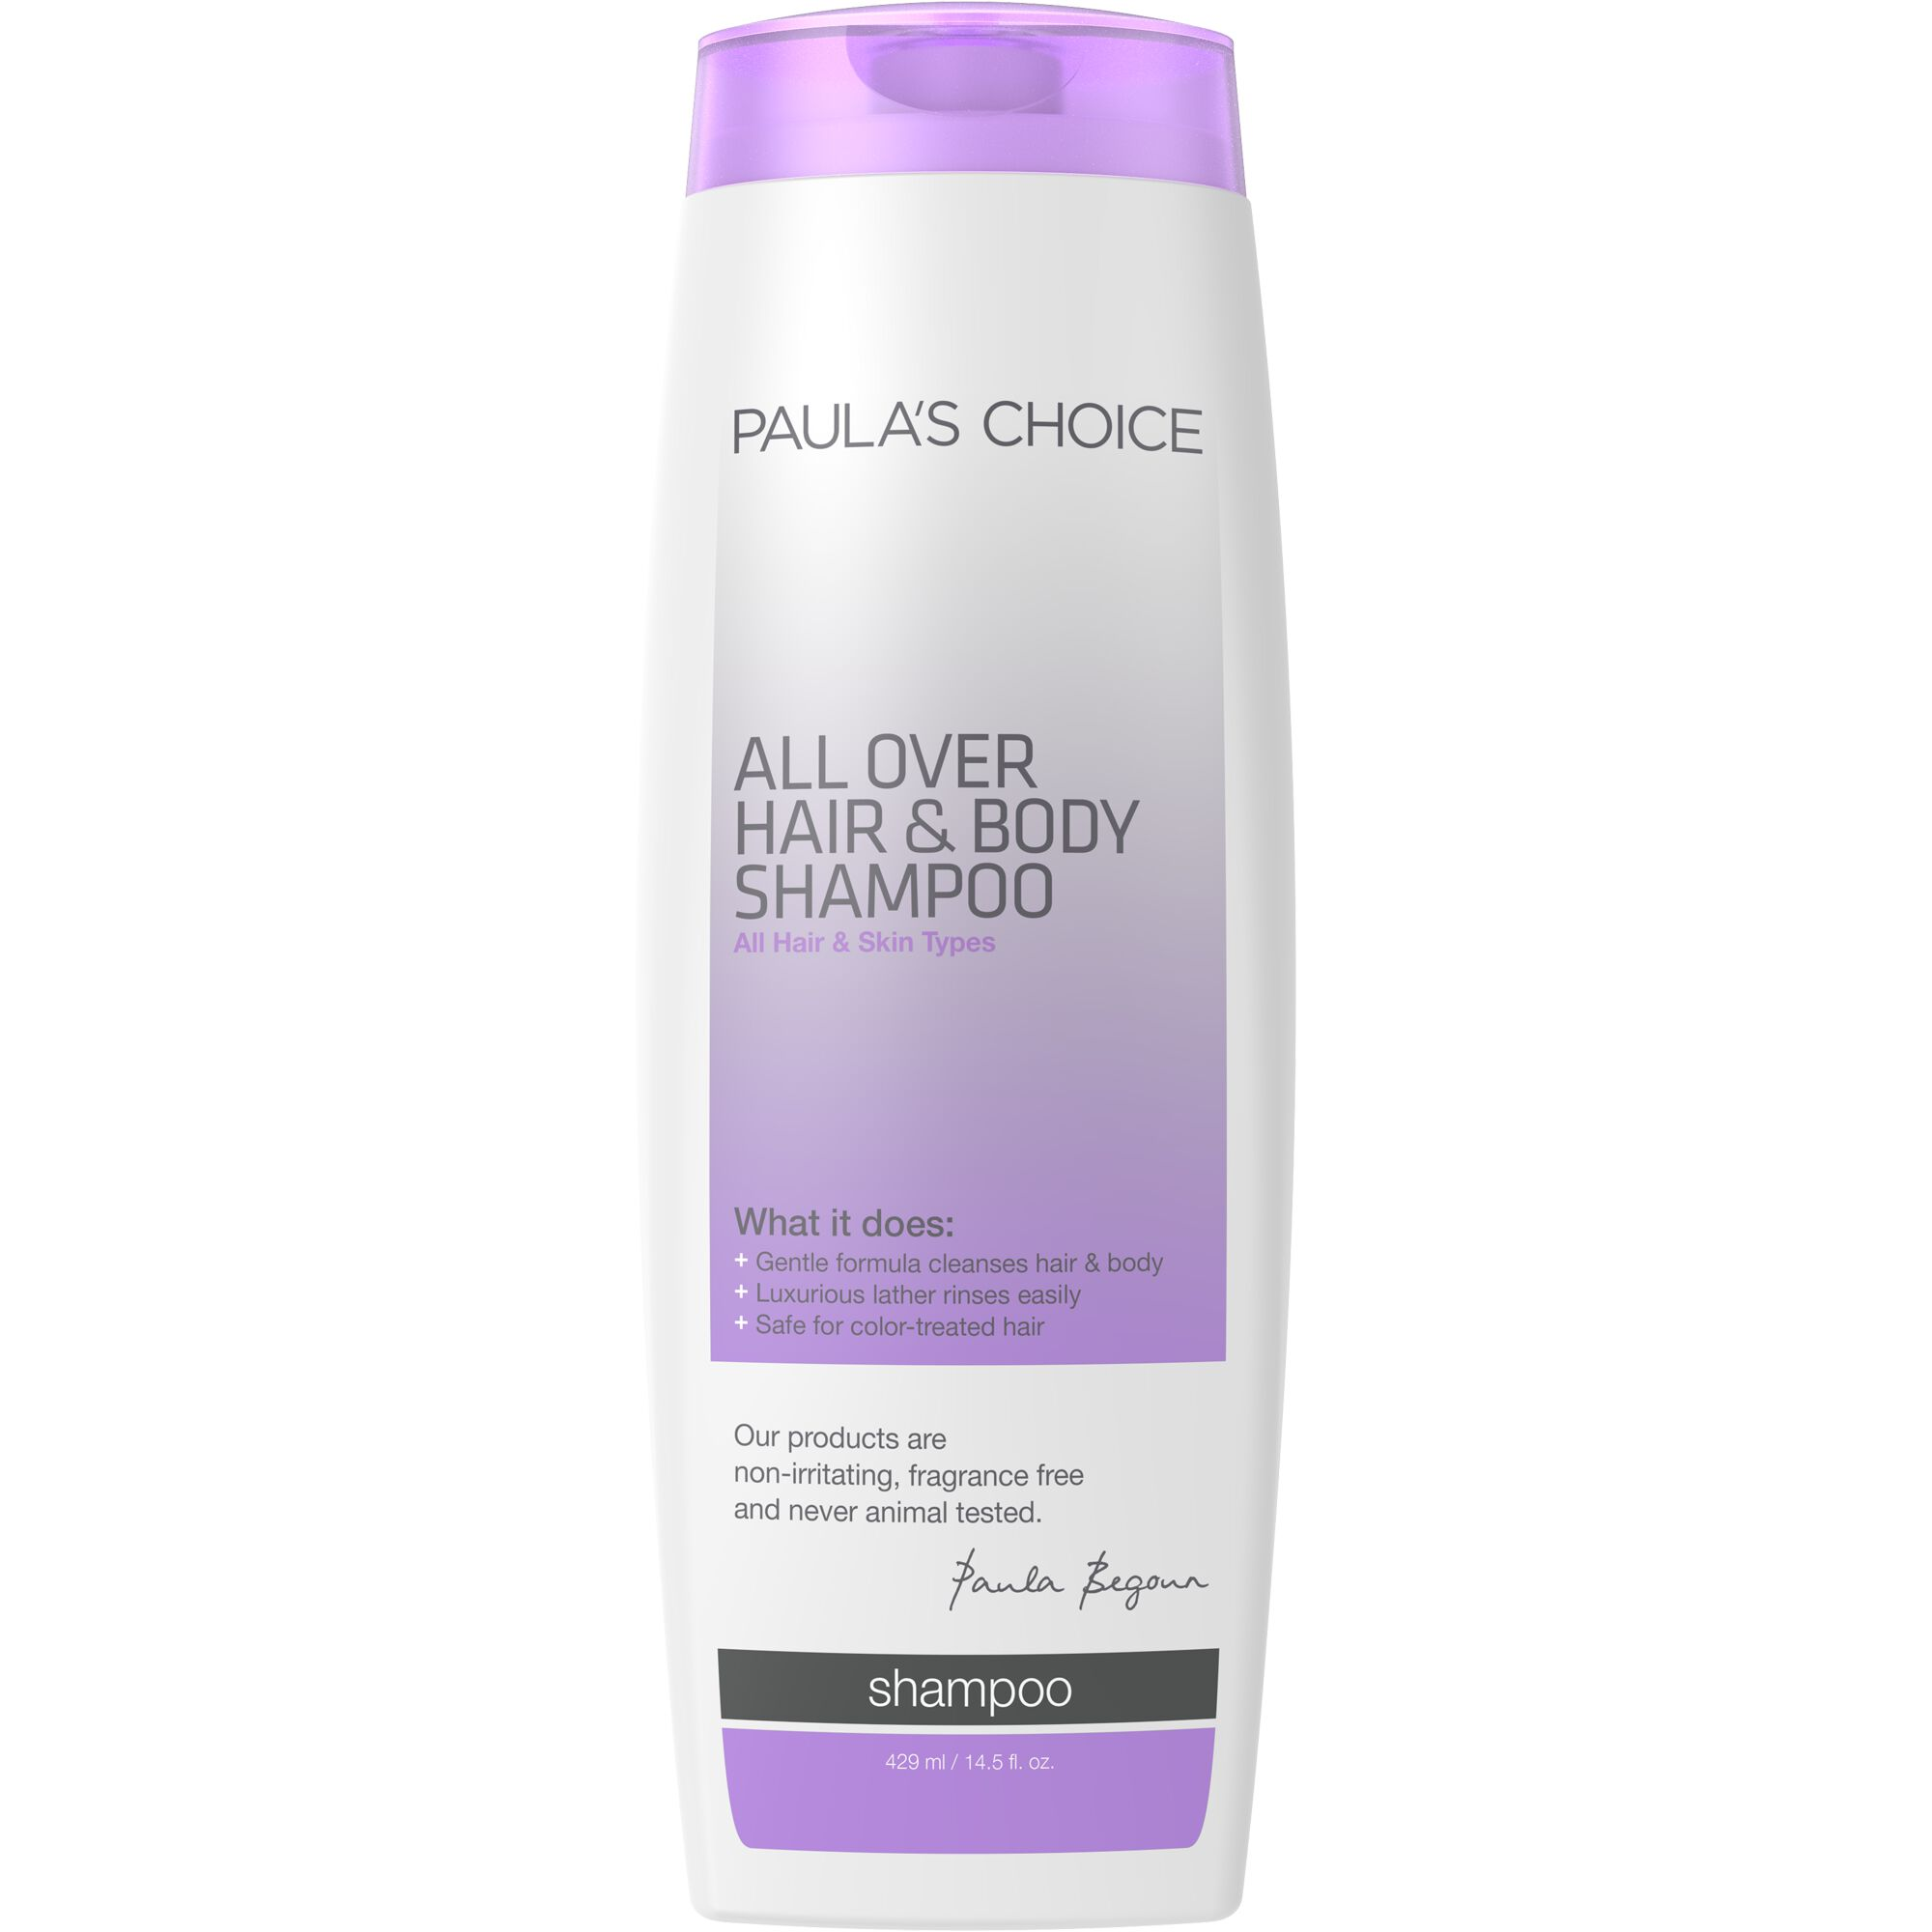 All Over Hair Shampoo Body Wash Paulas Choice